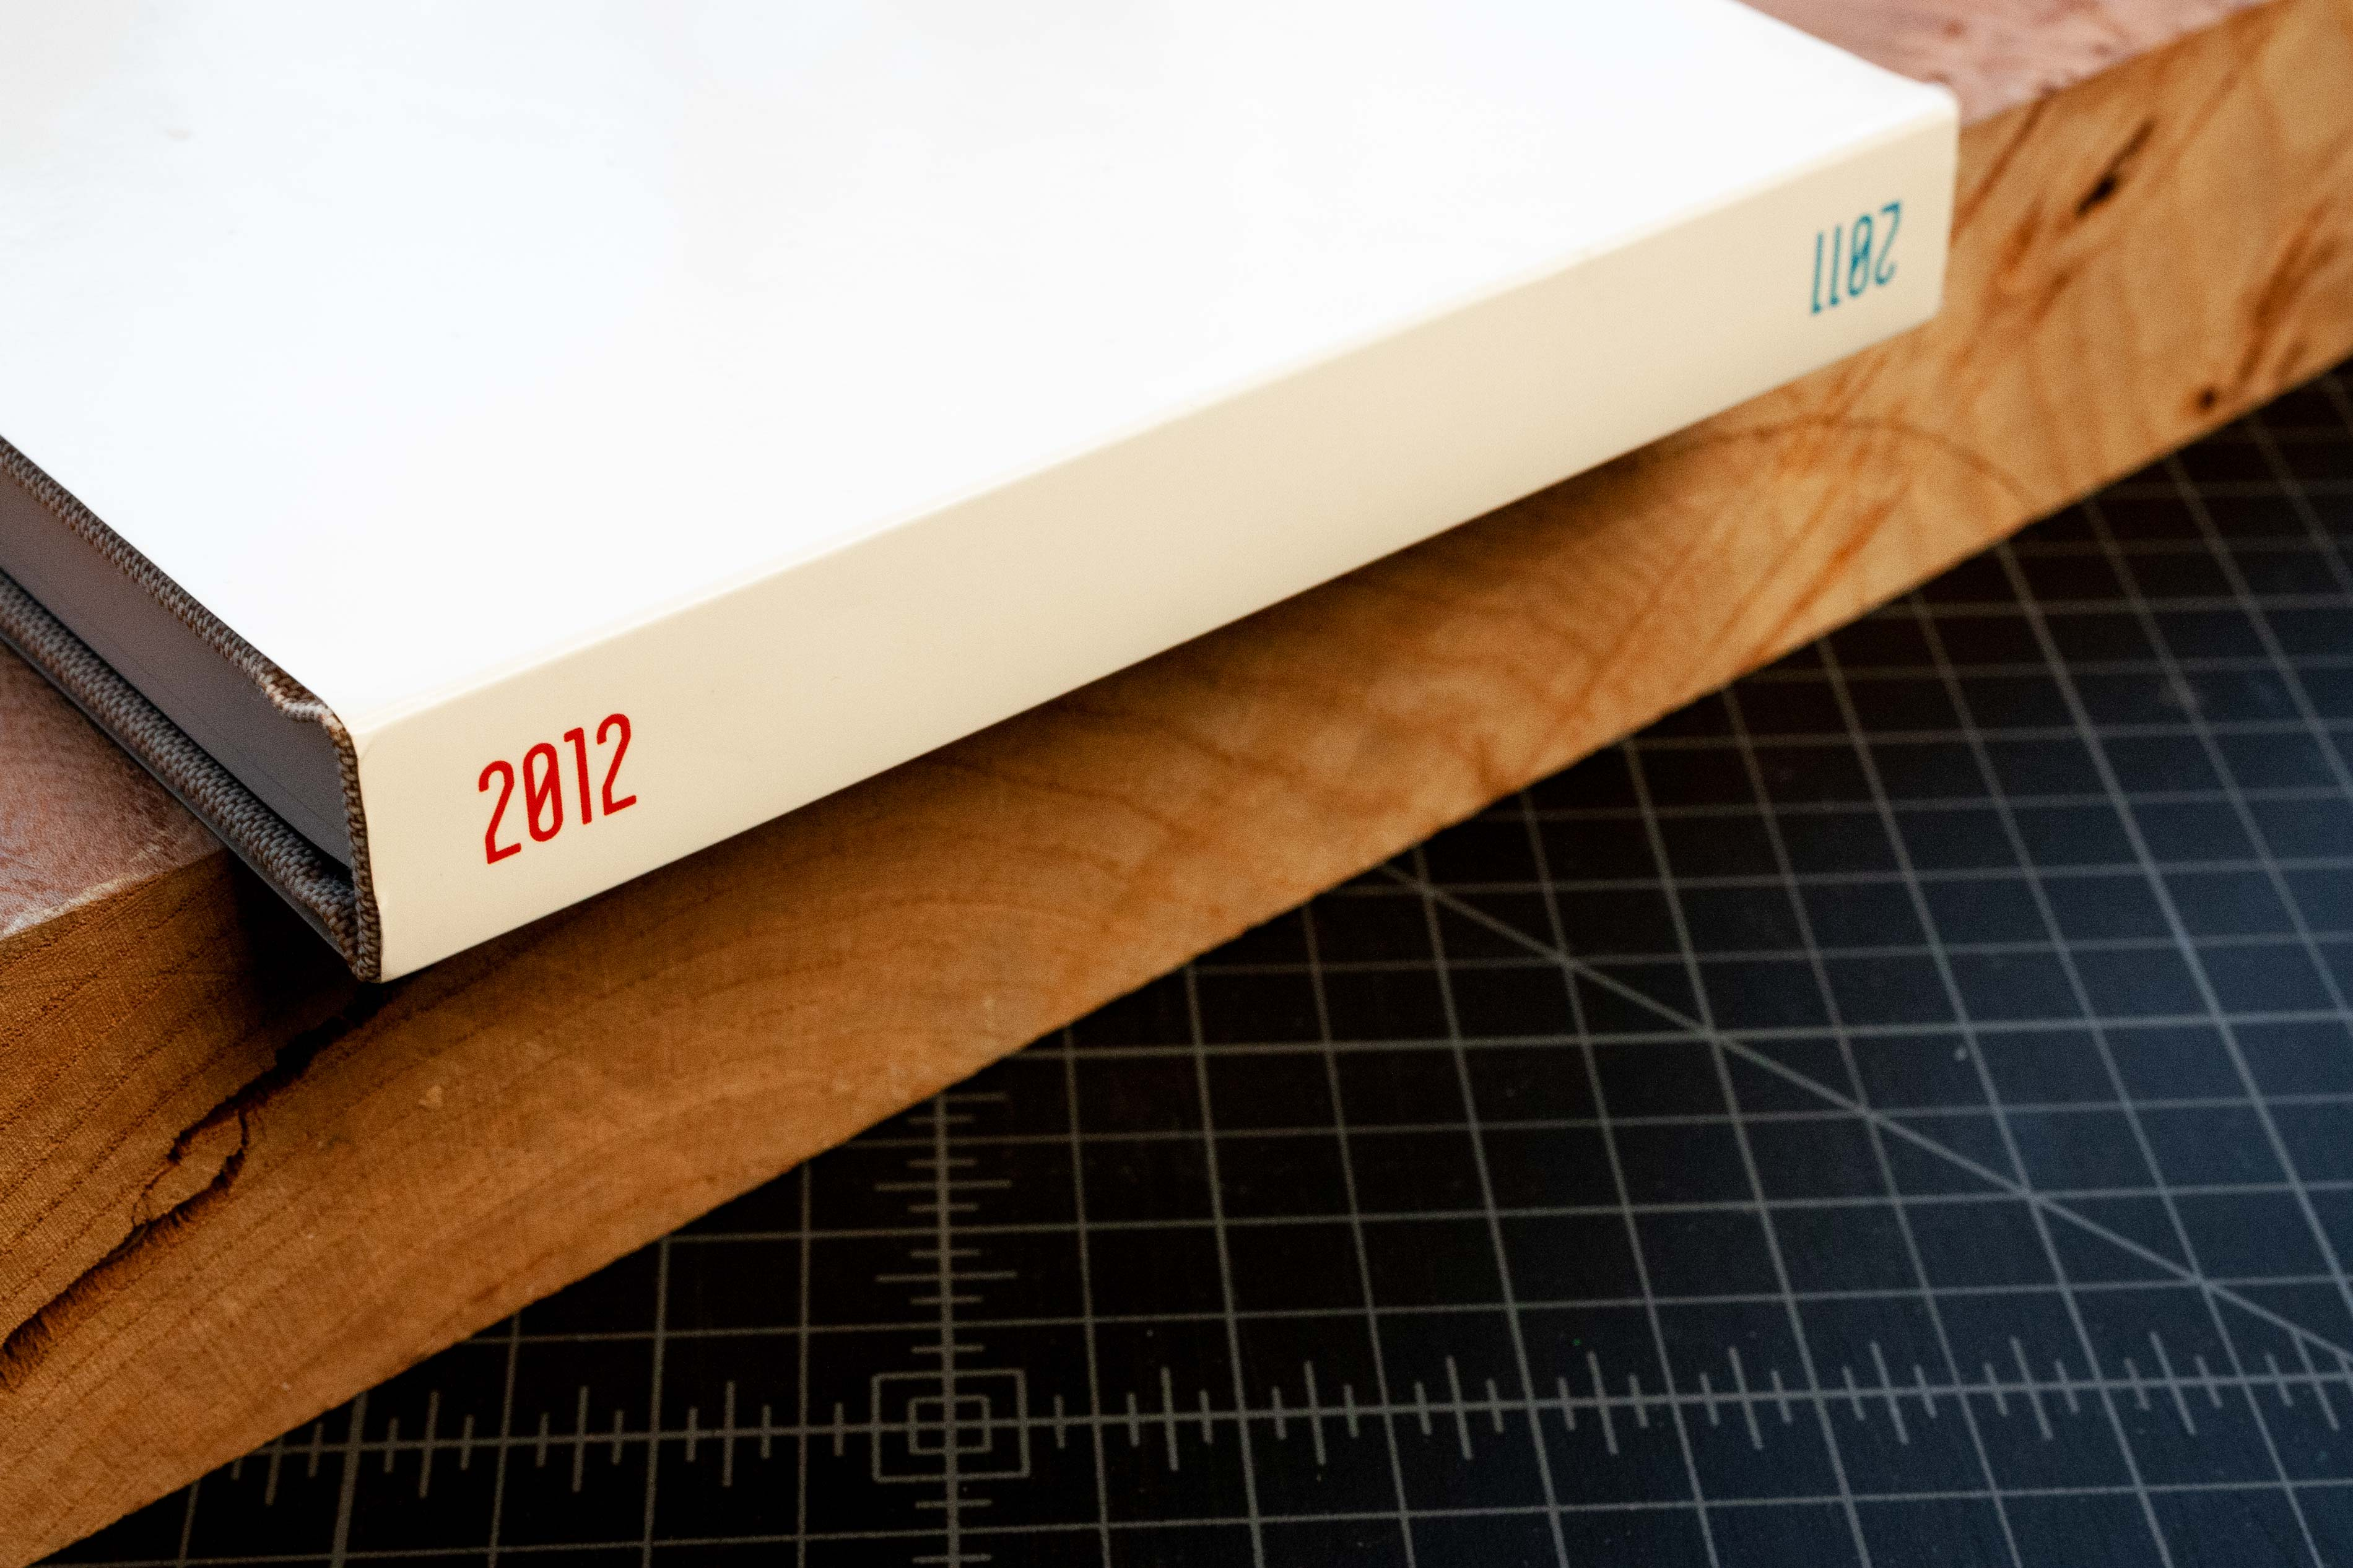 CiTR Radio book spine featuring 2011 and 2012 text — by Yagnyuk.